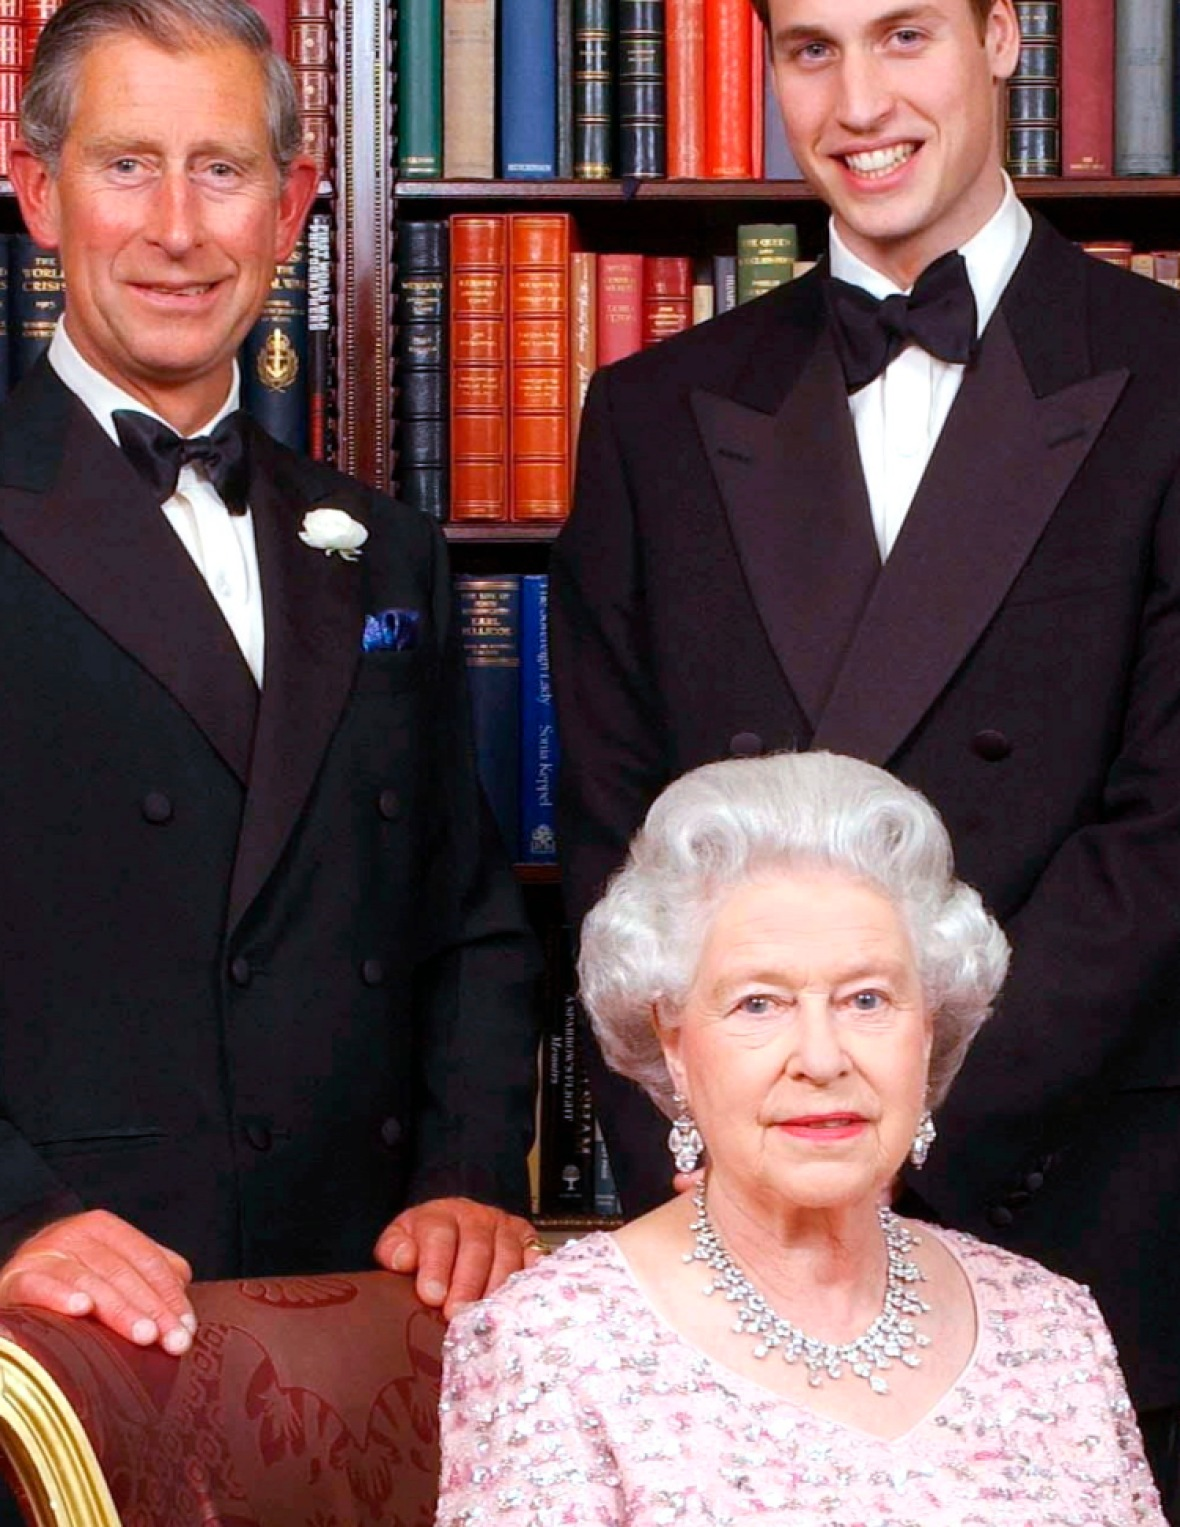 prince william prince charles queen elizabeth getty images